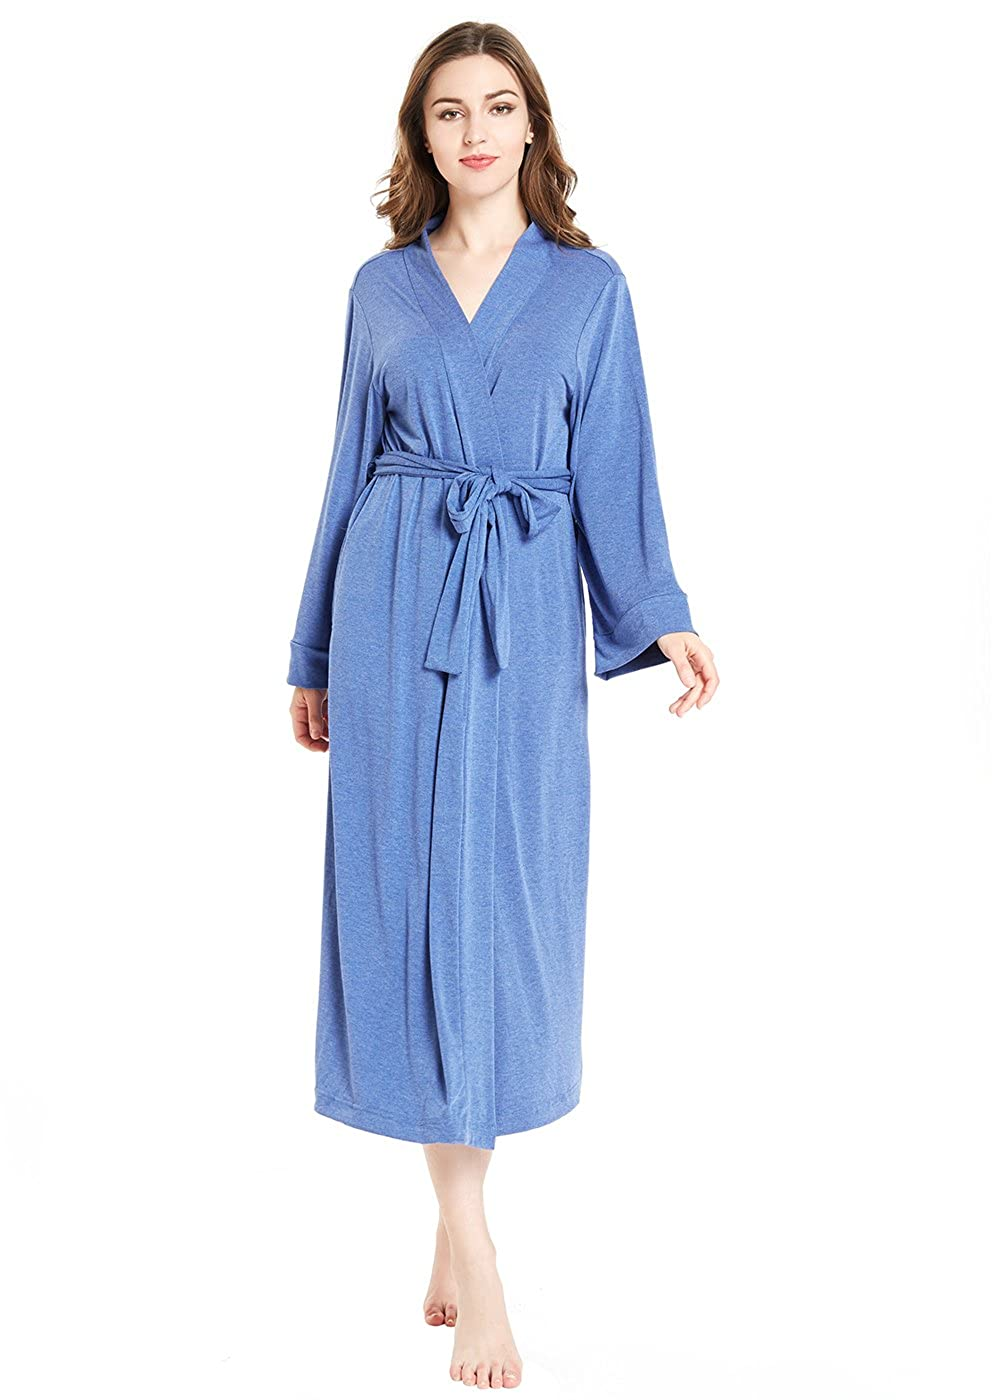 bluee lantisan Silky Satin Robe Women, Long Bathrobe Full Length VNeck Dressing Gown